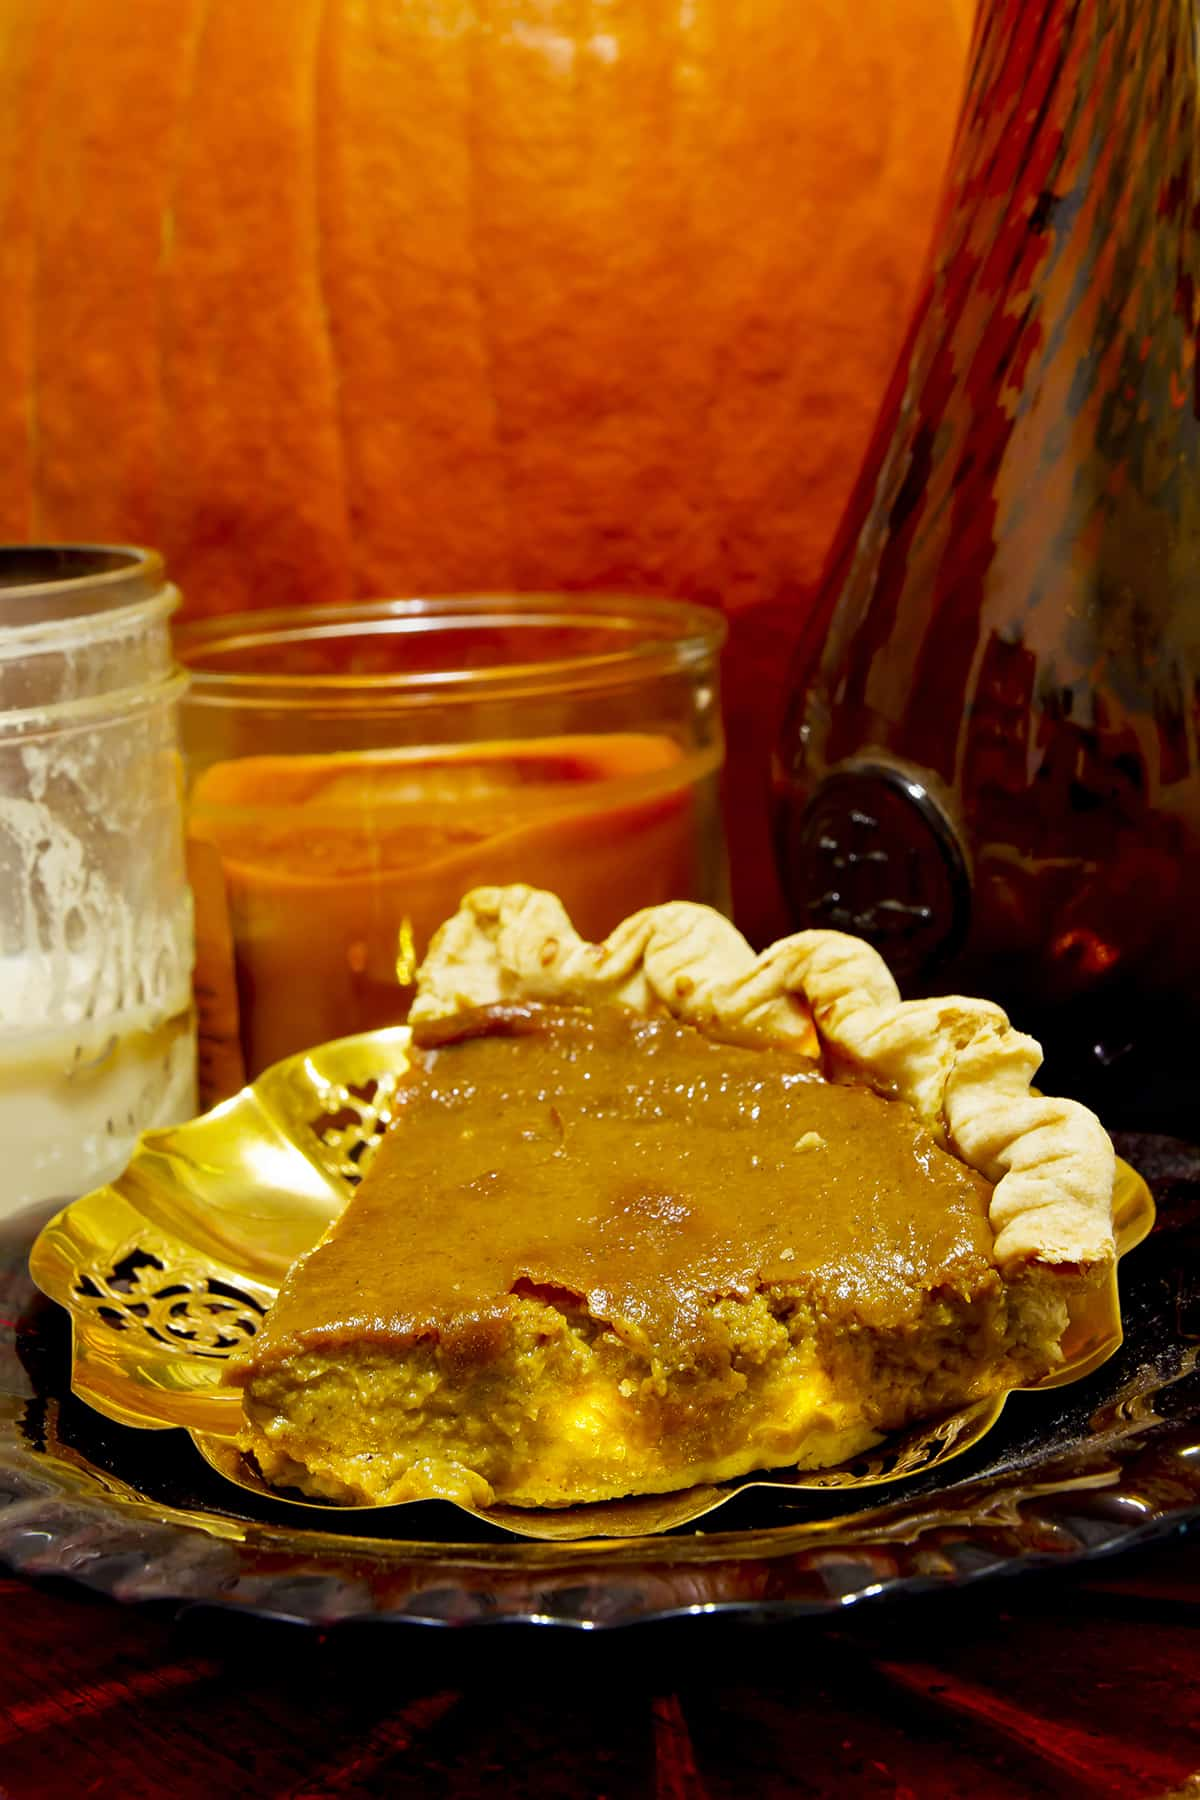 Pumpkin pie on gold plate surrounded by candles and pumpkins